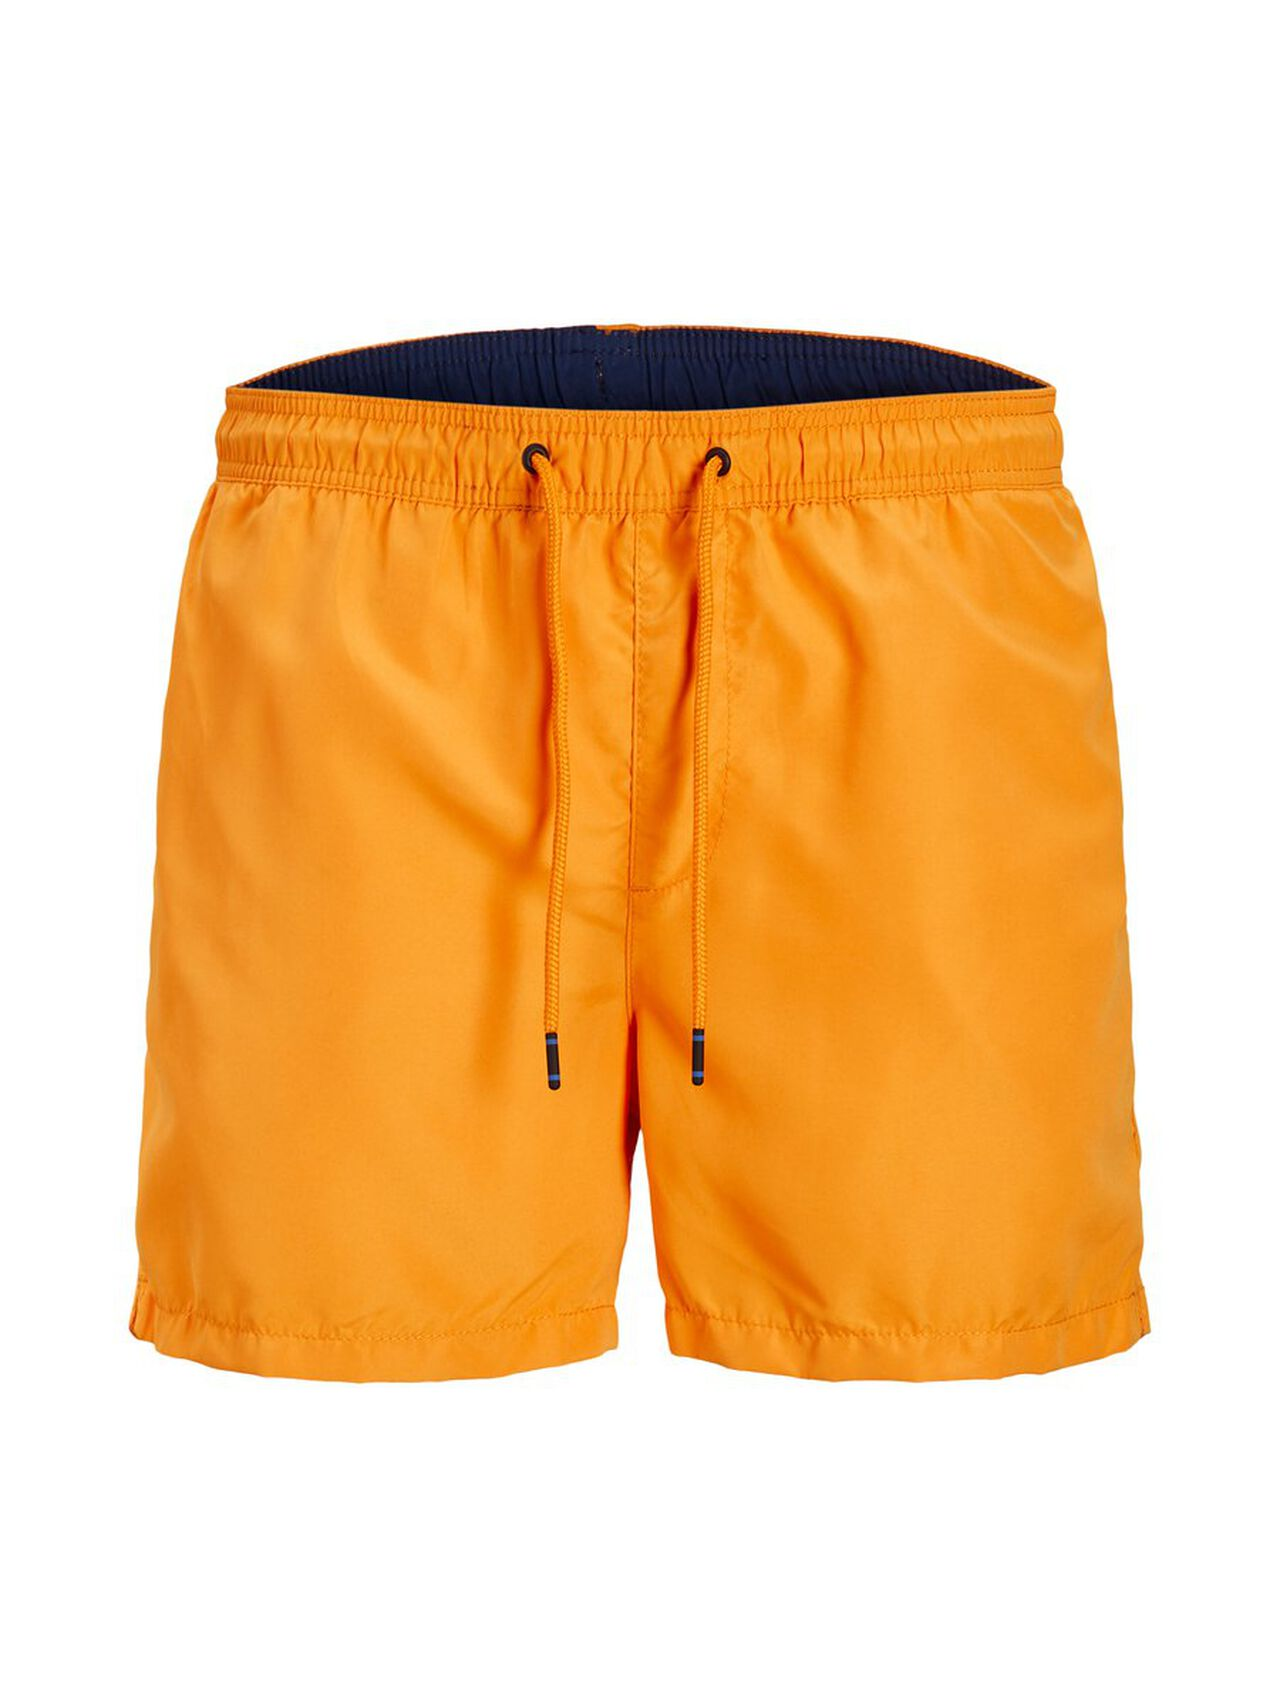 7cfd1b29b7 Quick dry swimshorts | JACK & JONES